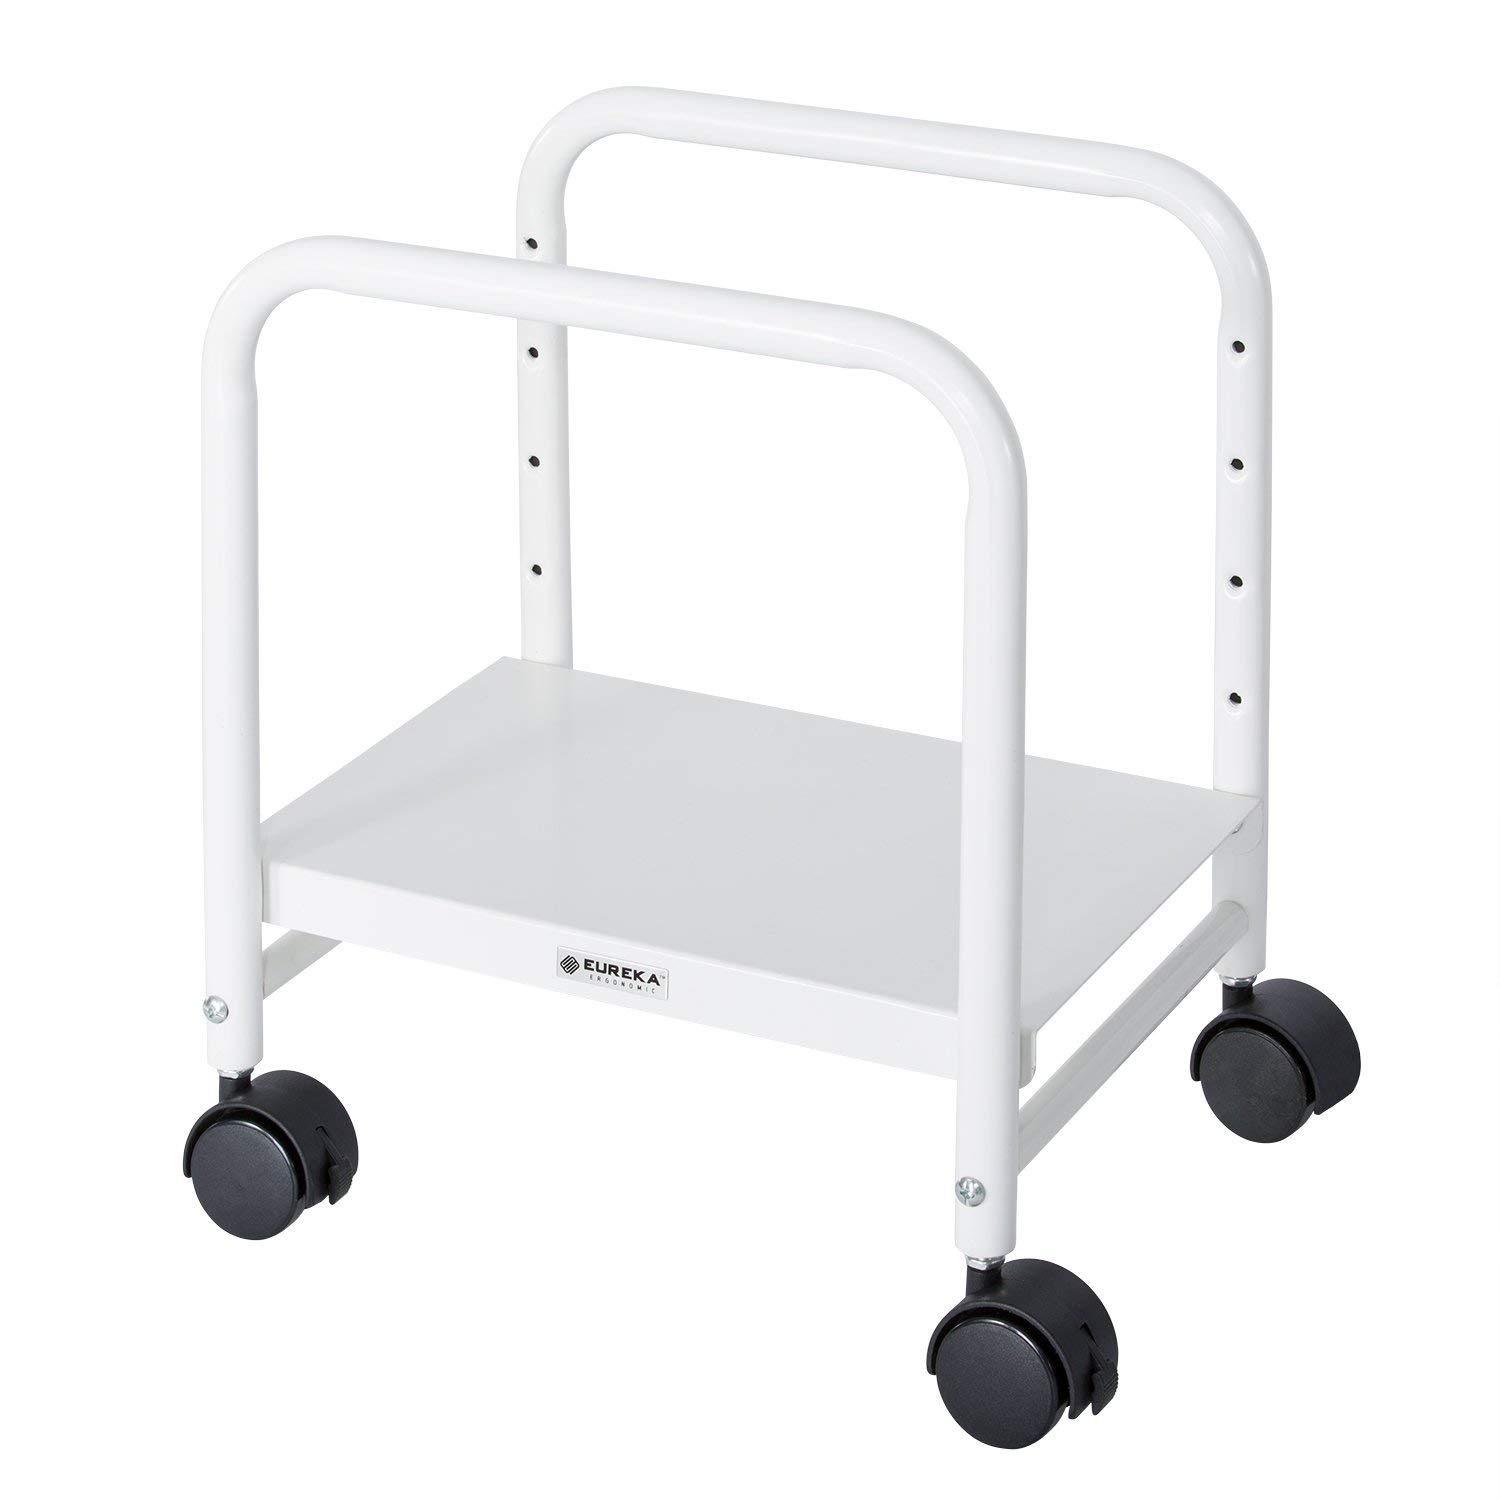 EUREKA ERGONOMIC Computer Cart Height-Adjustable Mobile CPU Stand Suitable for Sit Stand Desk Converters White by Eureka Ergonomic